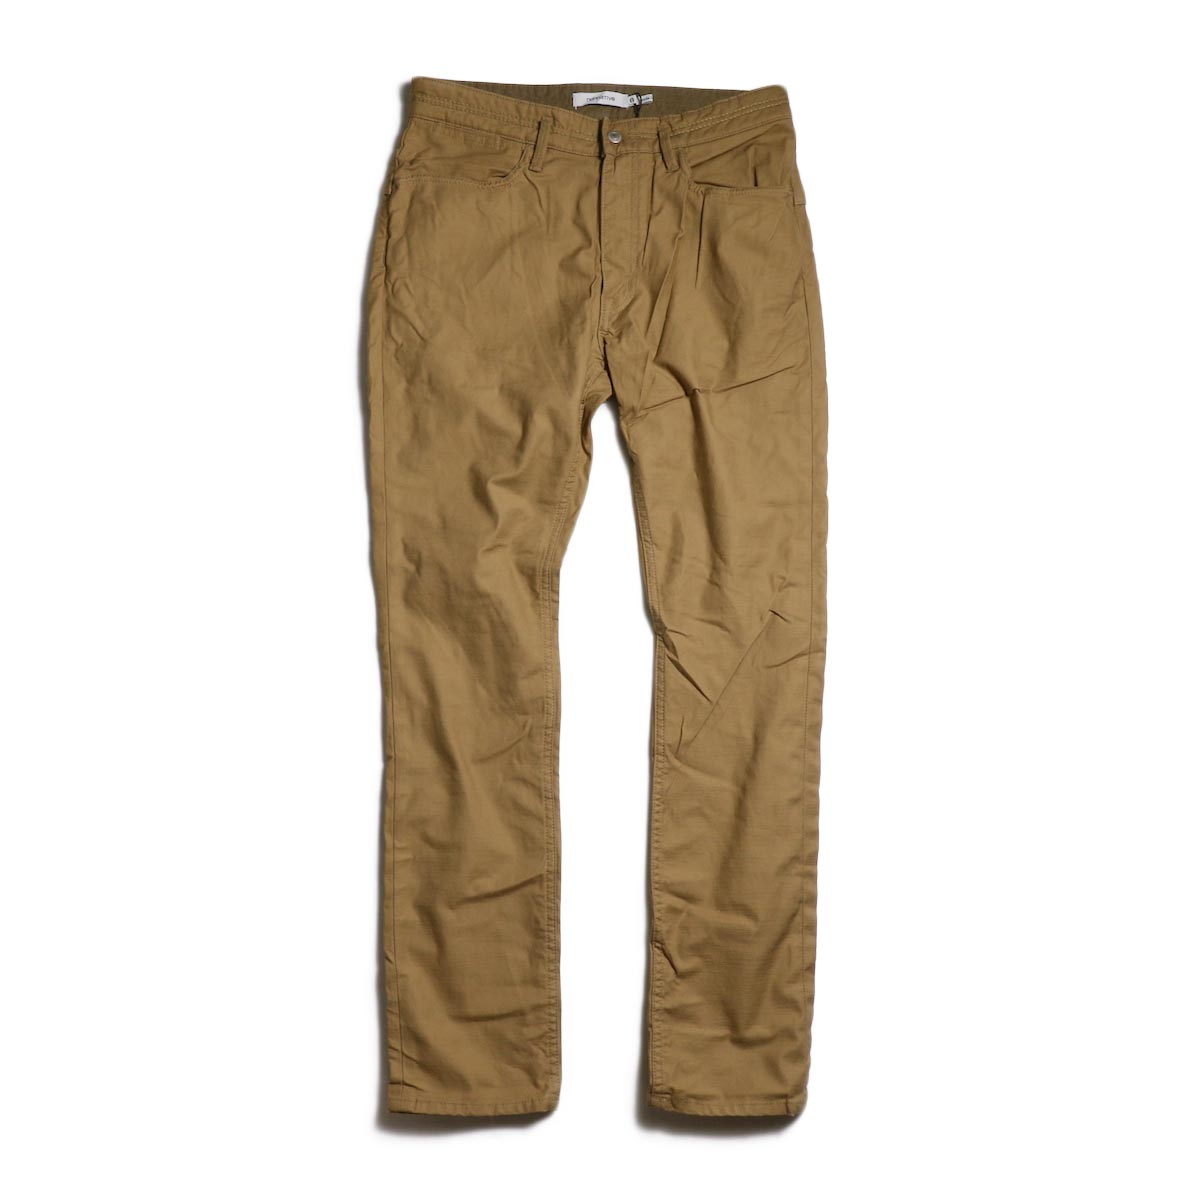 nonnative / DWELLER 5P JEANS DROPPED FIT C/P BACK SATIN STRETCH -Beige